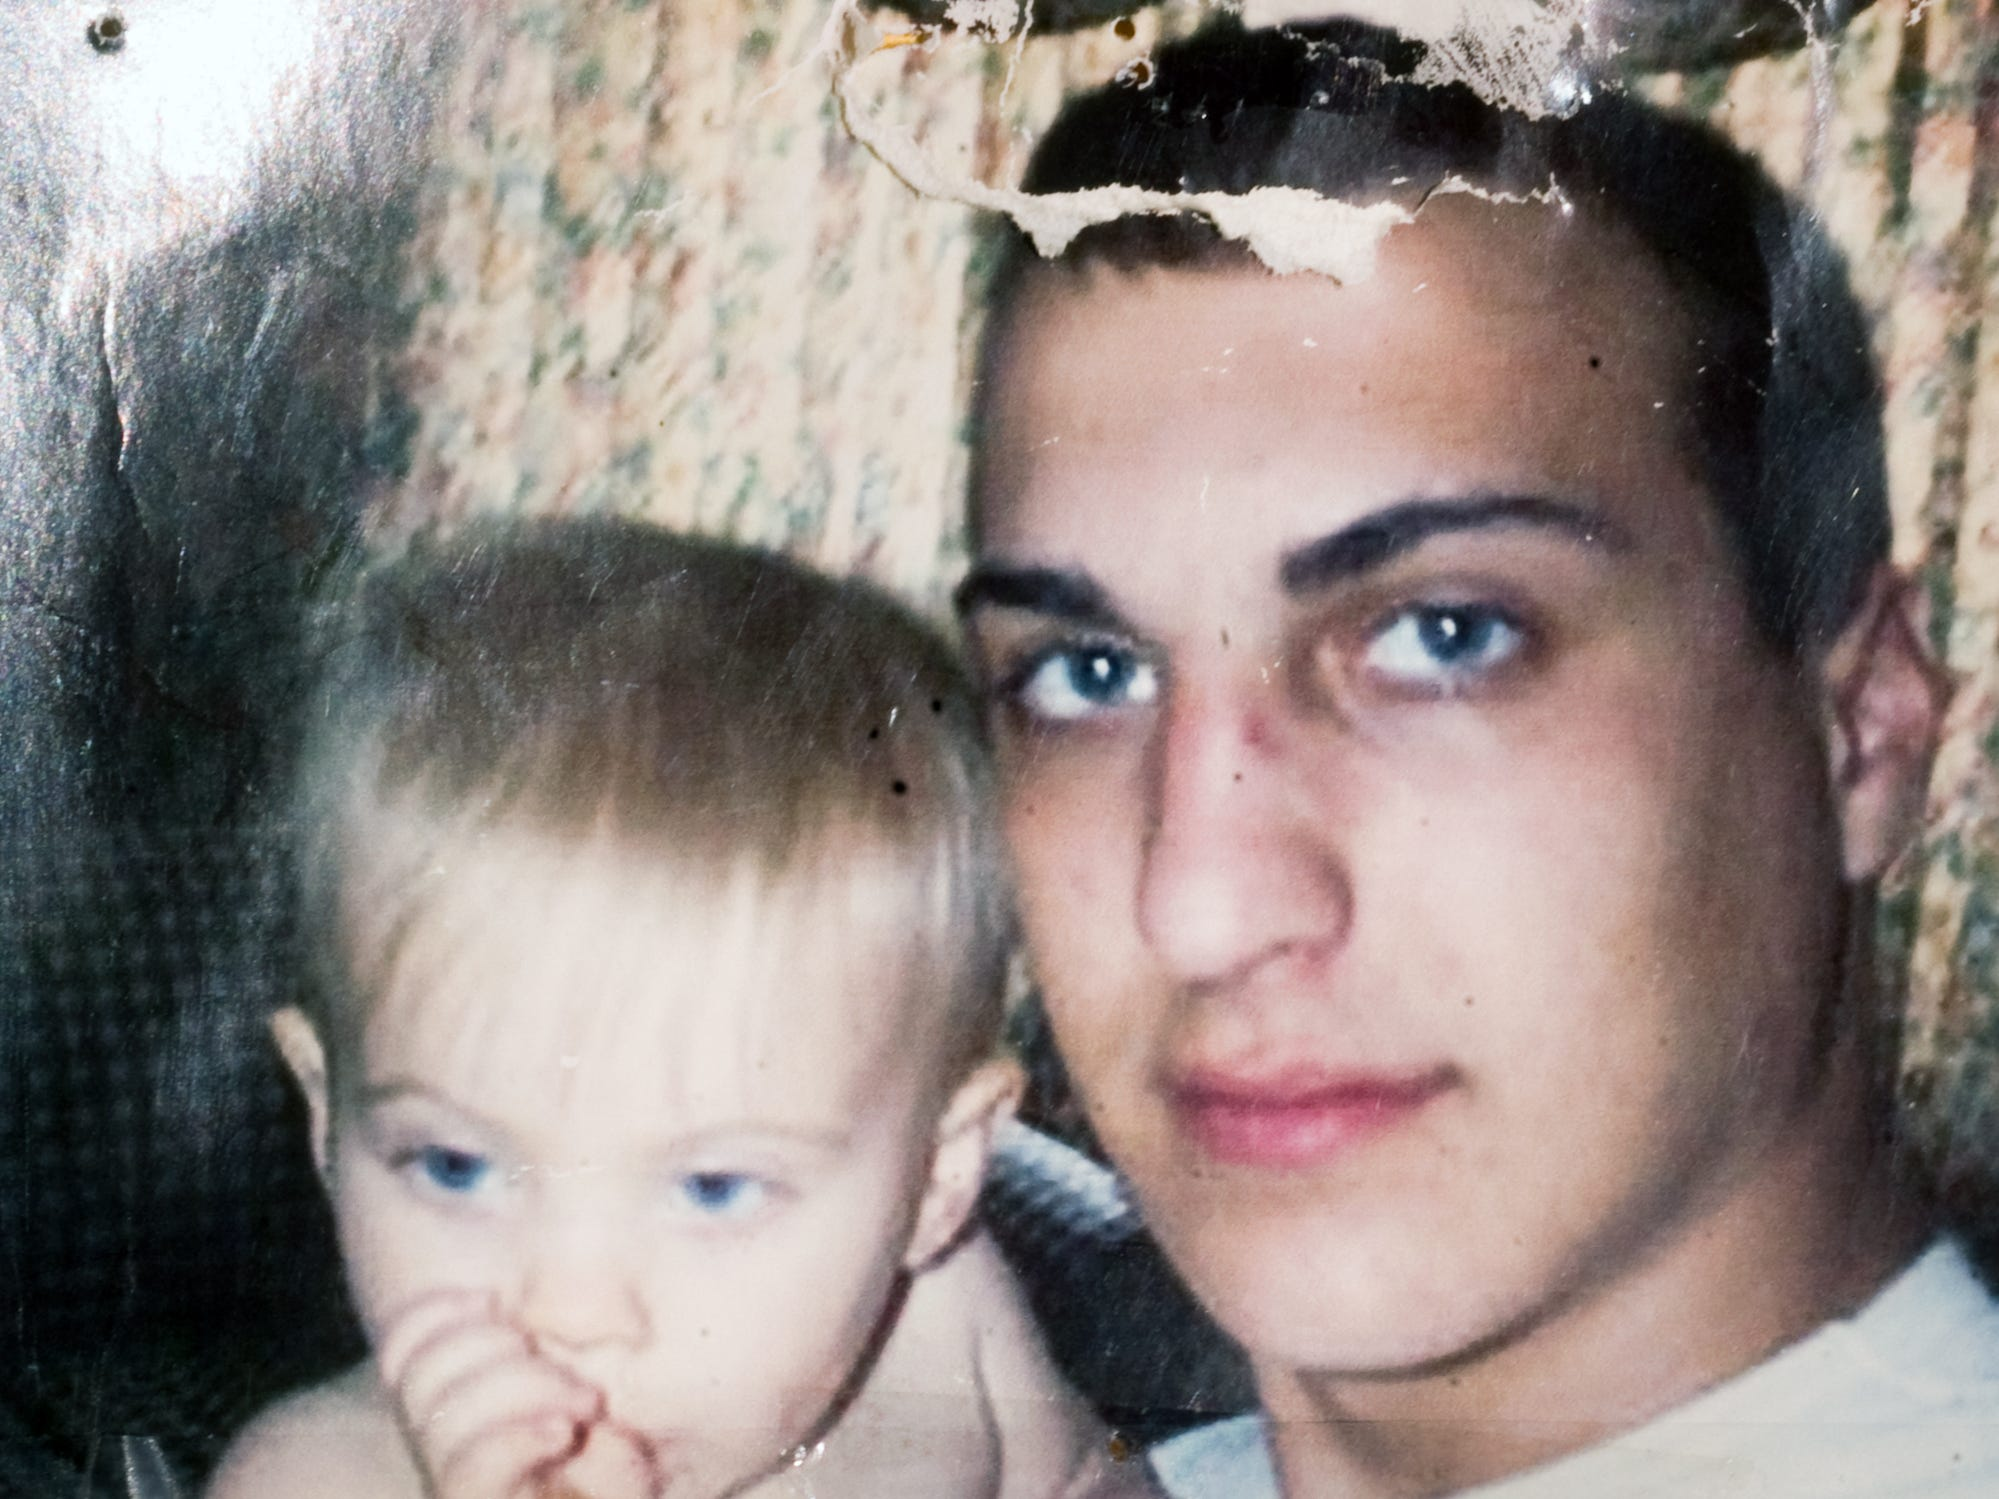 Army Pfc. Corey Small is shown with his young son before his death in Iraq in 2003. The 20-year-old from East Berlin died in July 2003 from a self-inflicted gunshot wound in Baghdad, according to the Department of the Army. He was assigned to the 502nd Military Intelligence Company, 2nd Armored Cavalry Regiment.